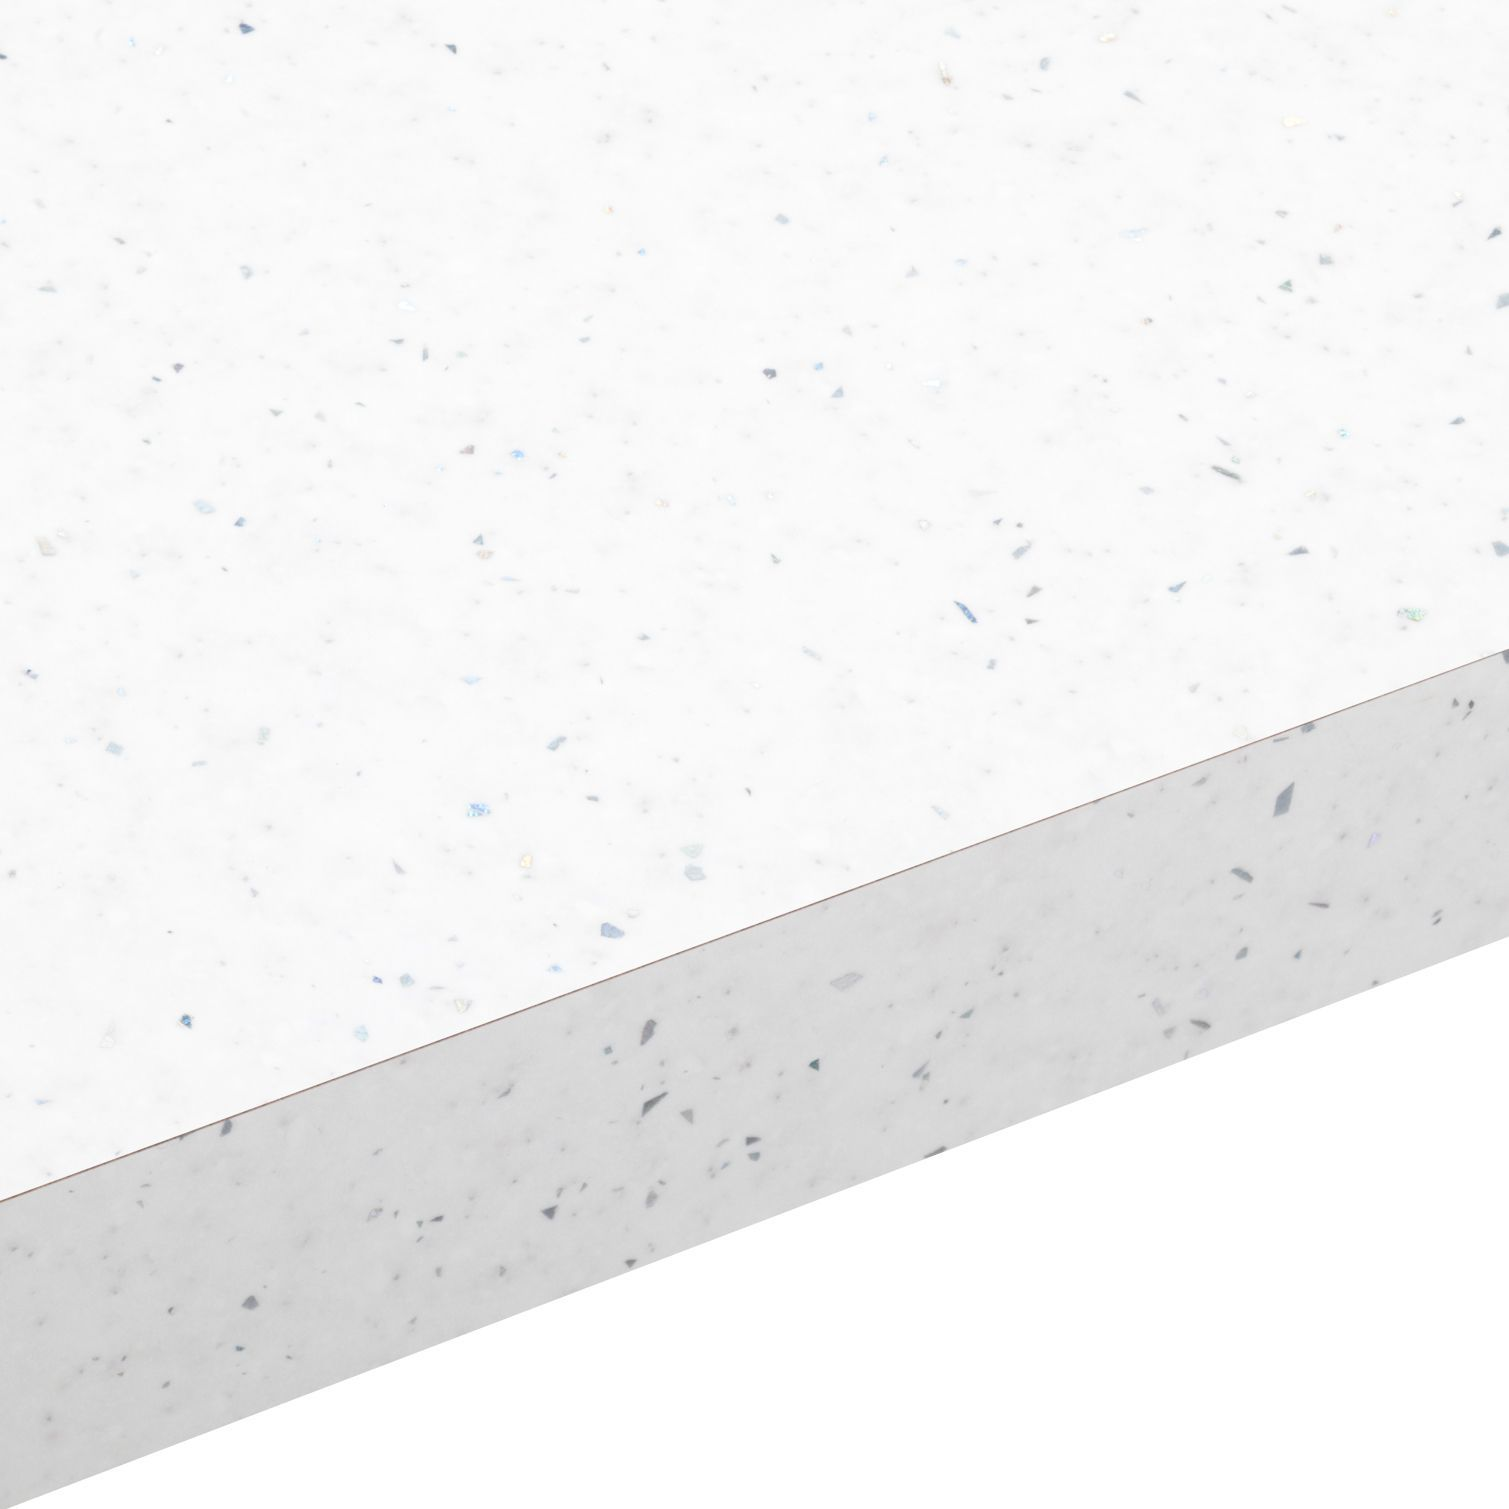 28mm astral white gloss square edge worktop l 2000mm d 365mm departments diy at b q